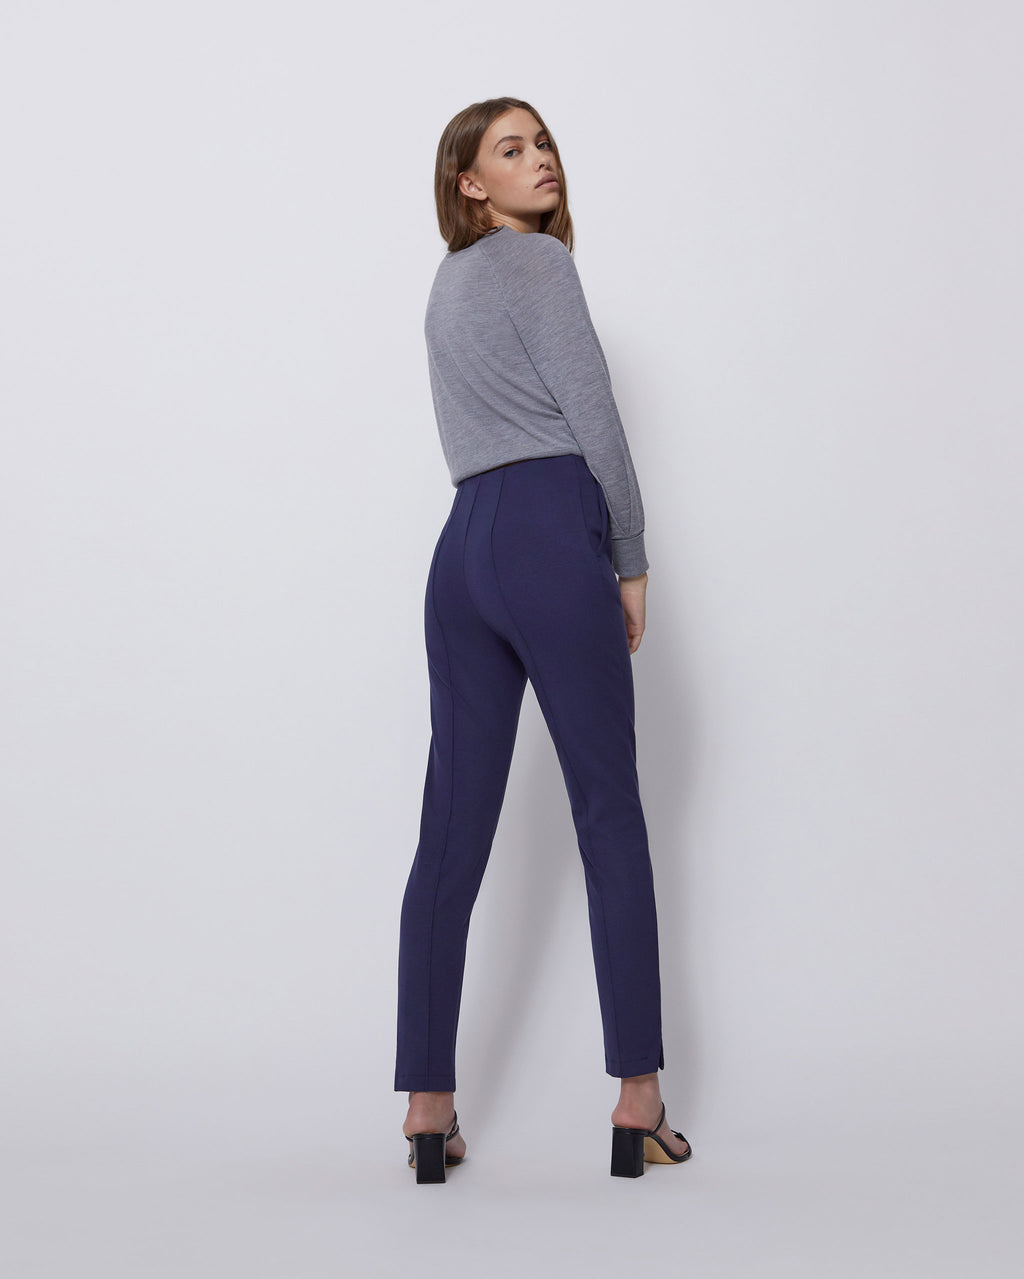 The Aria Pant in Nocturnal